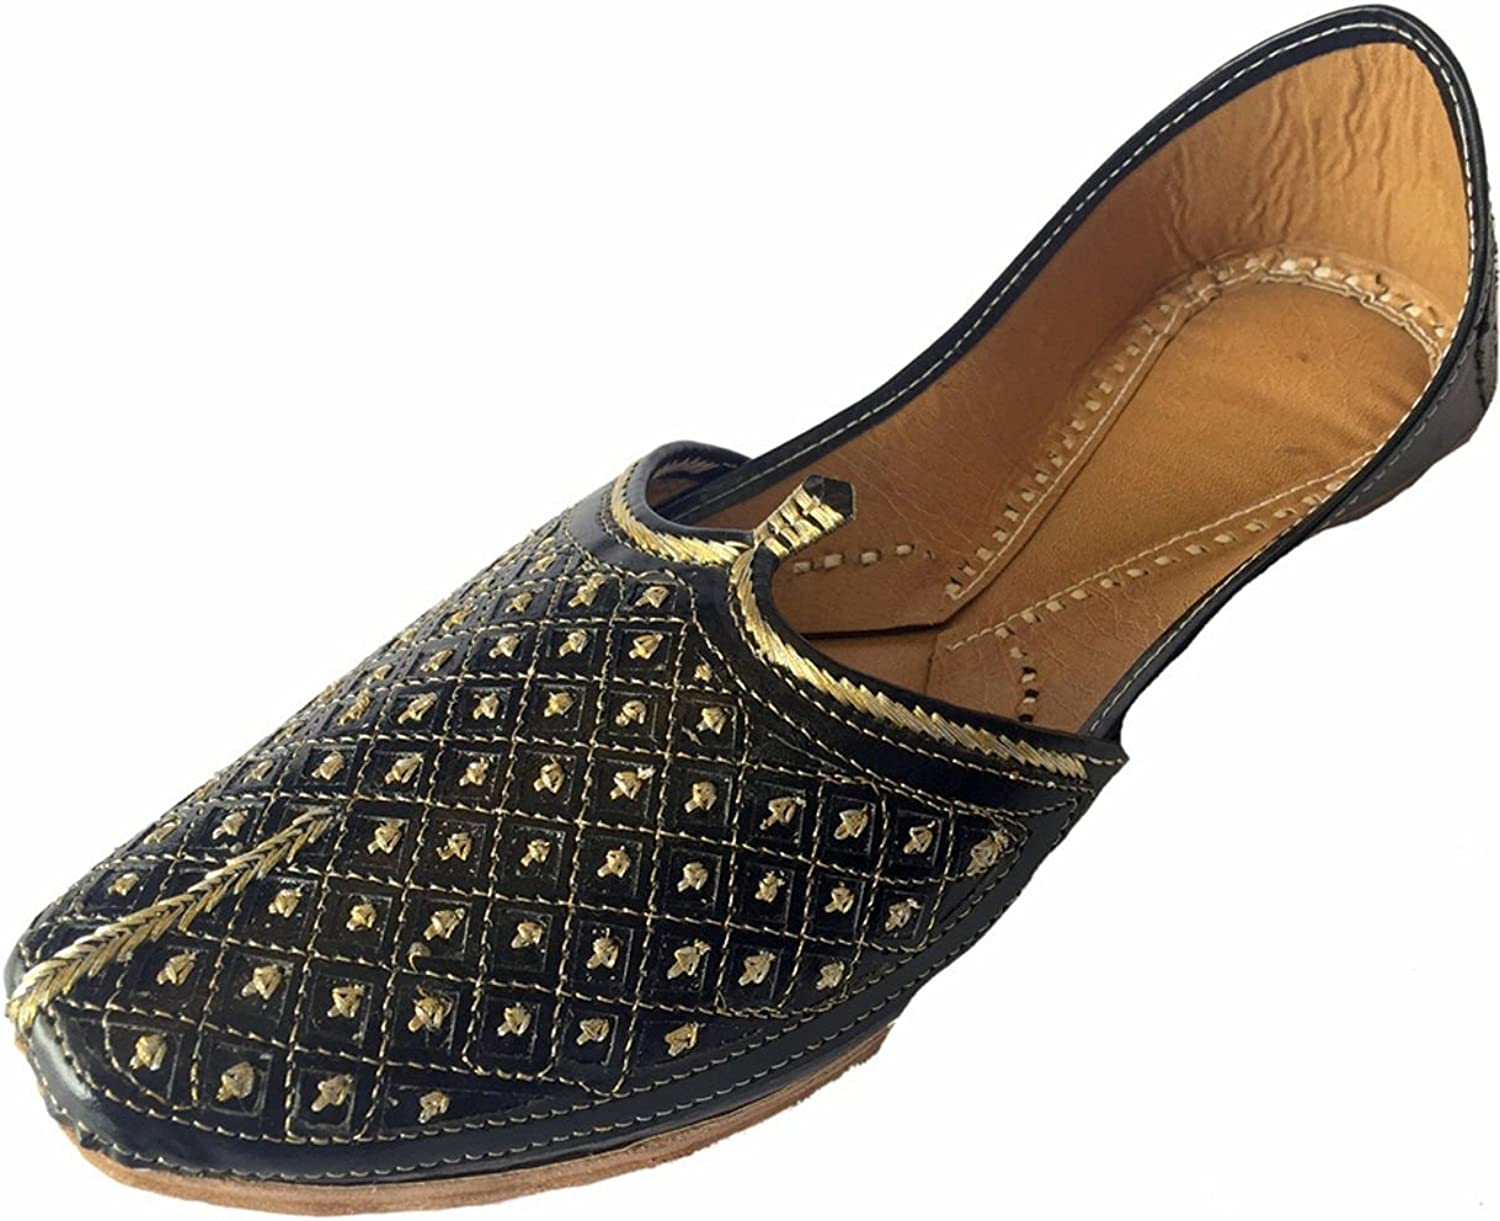 Step n Style Men's Flat Black Wedding Khussa shoes Traditional Indian Leather Loafer Punjabi Jutti